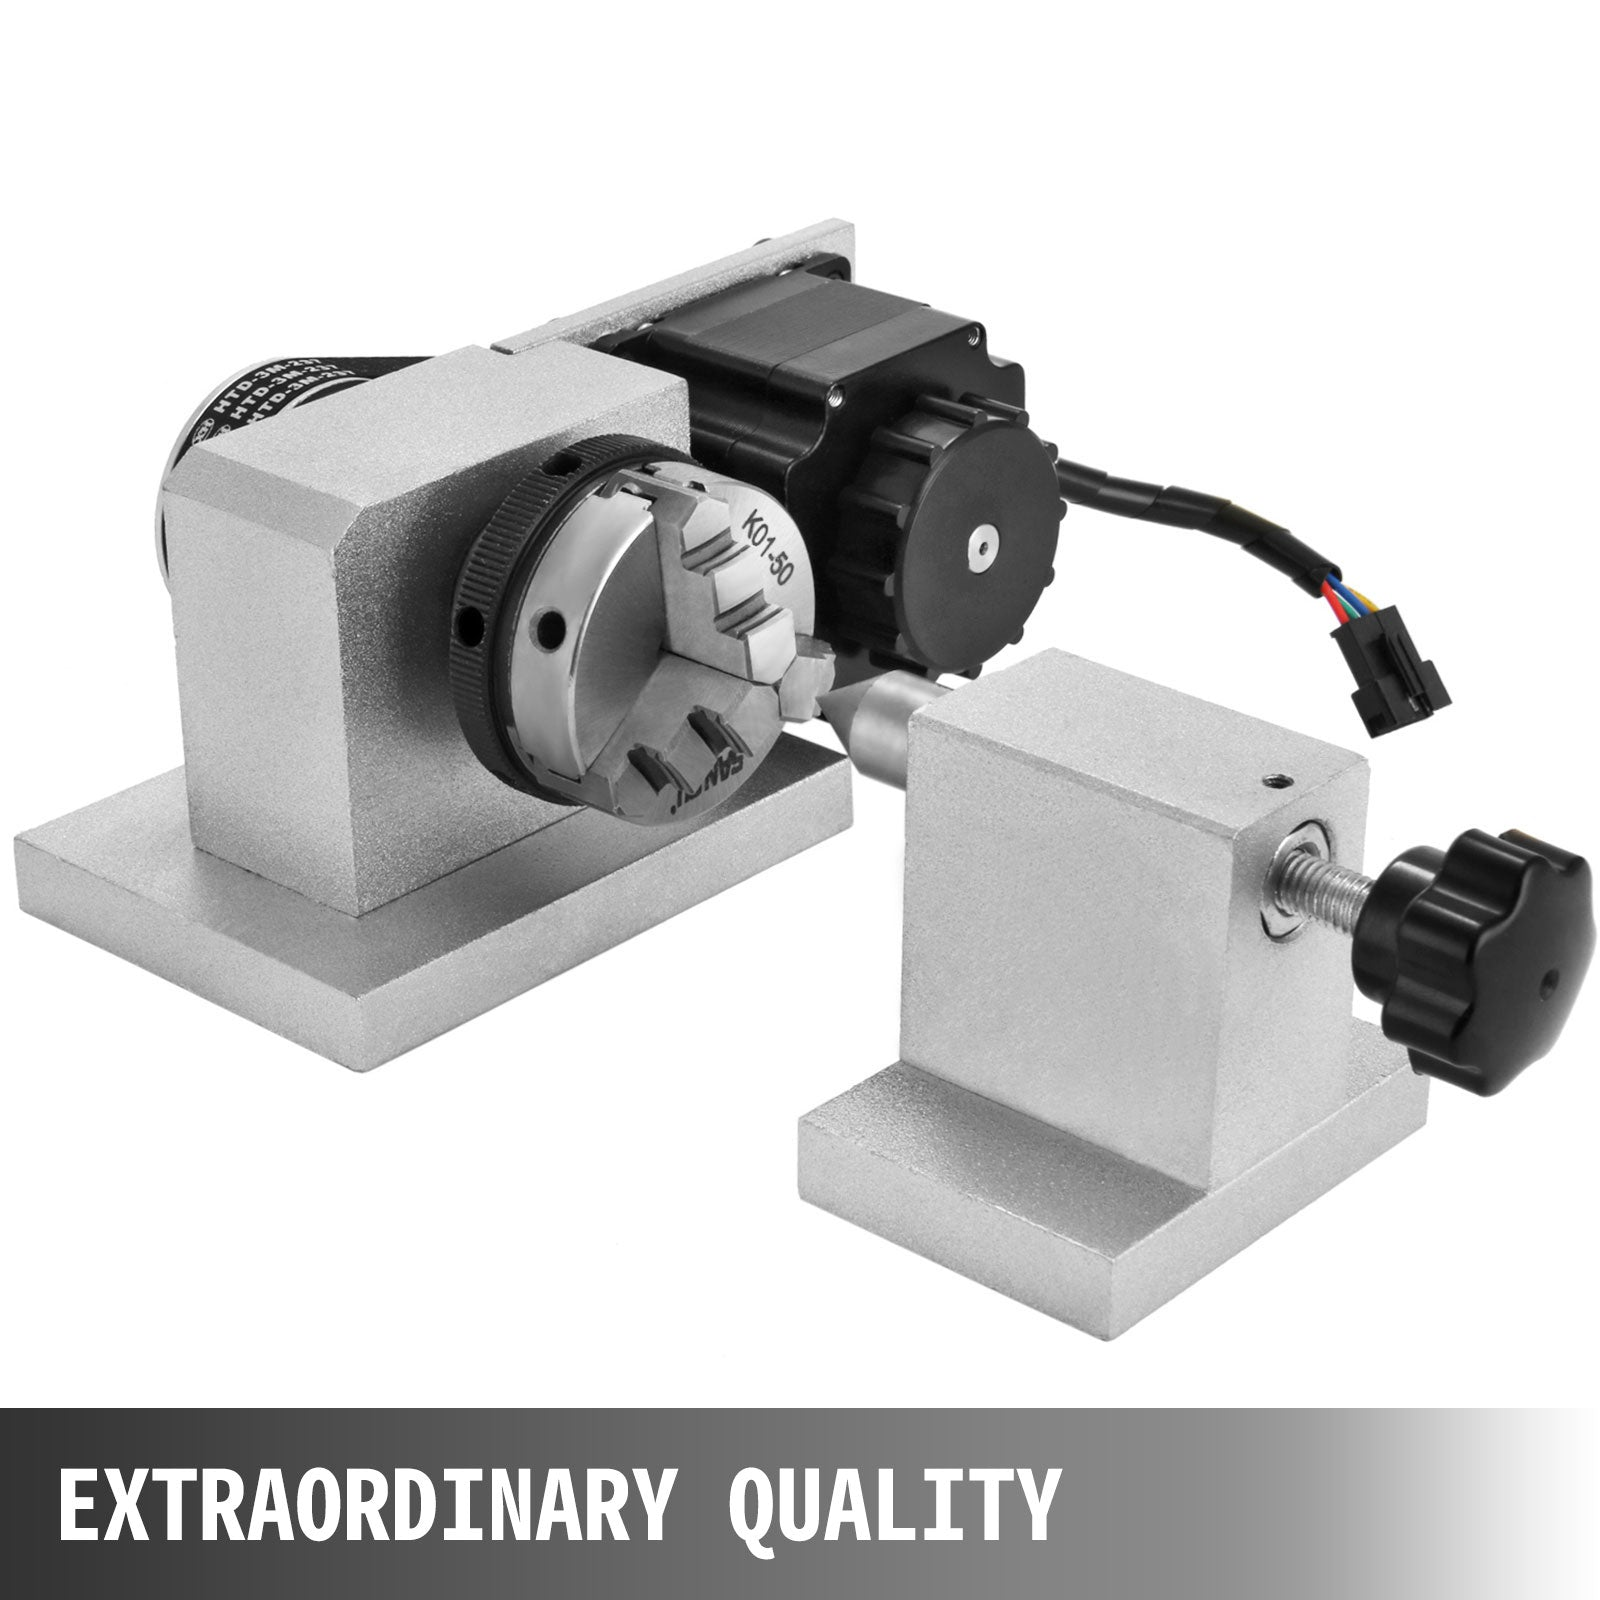 Cnc Router Rotational Rotary Axis For Croll 4th-axis Durable Engraving Machine